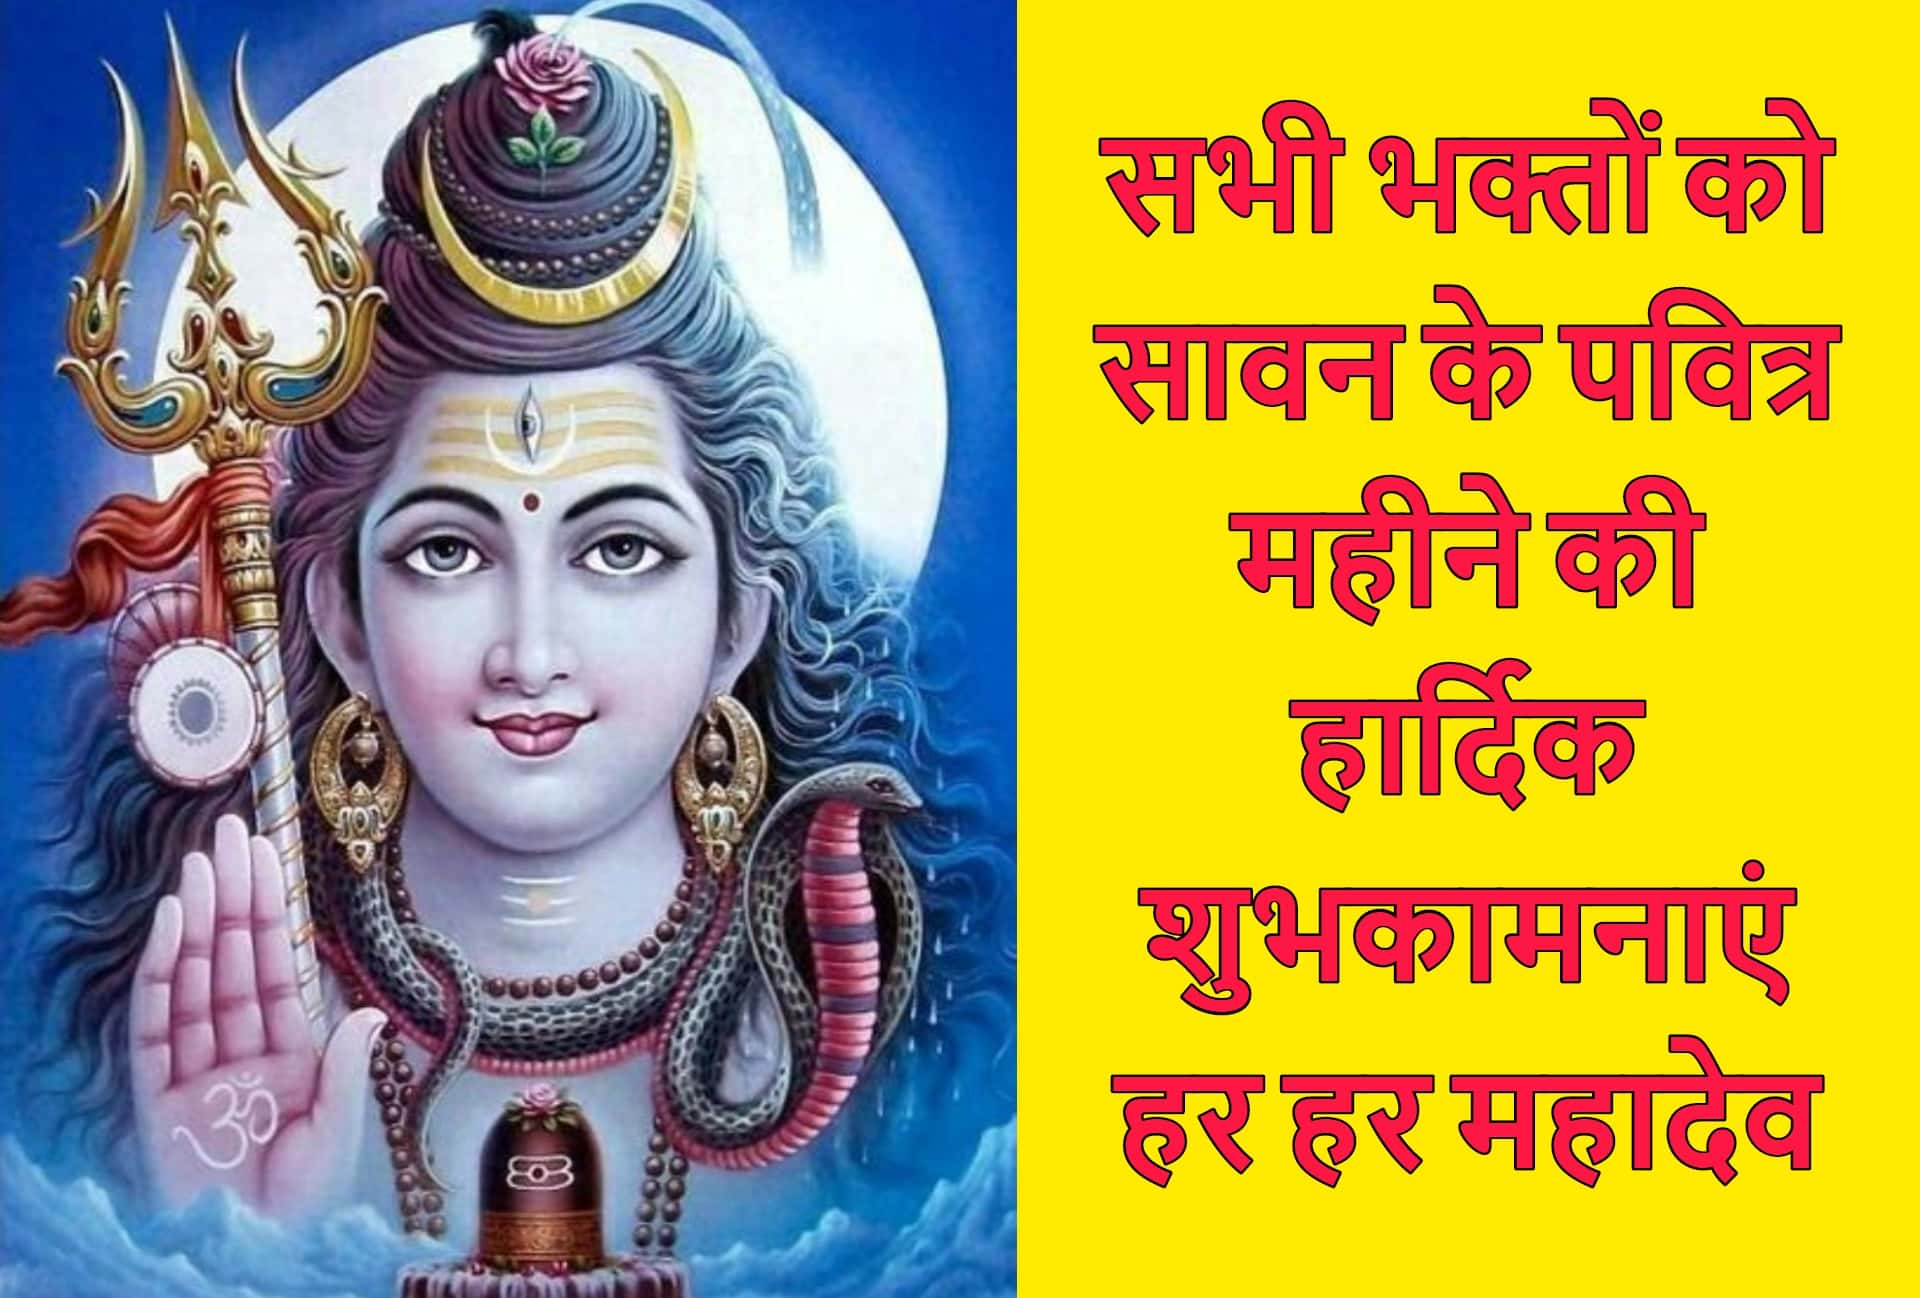 Sawan Mas Whises Photo in Hindi | Sawan Mas Wishes Message in Hindi